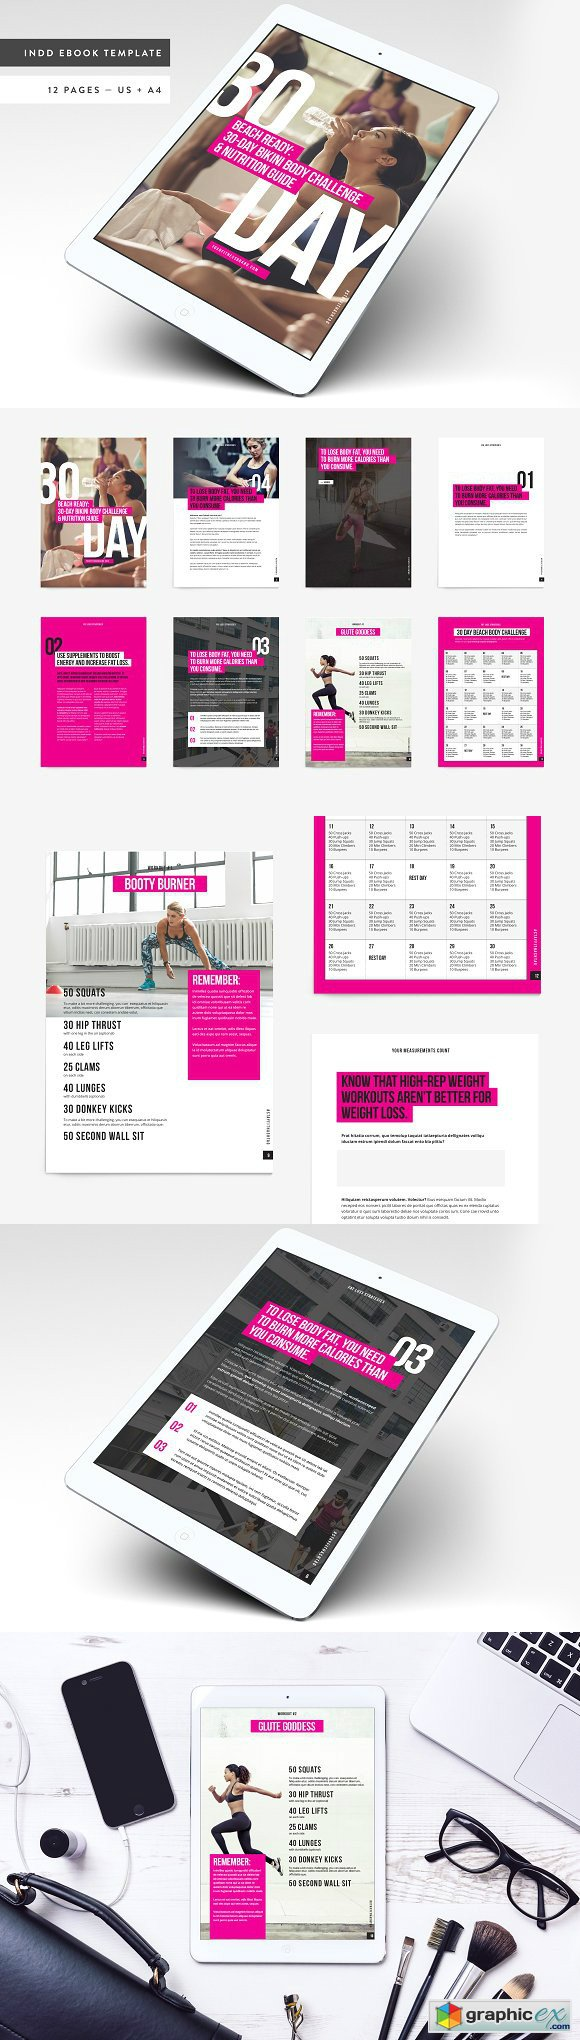 Fitness Bold Ebook Template Free Download Vector Stock Image